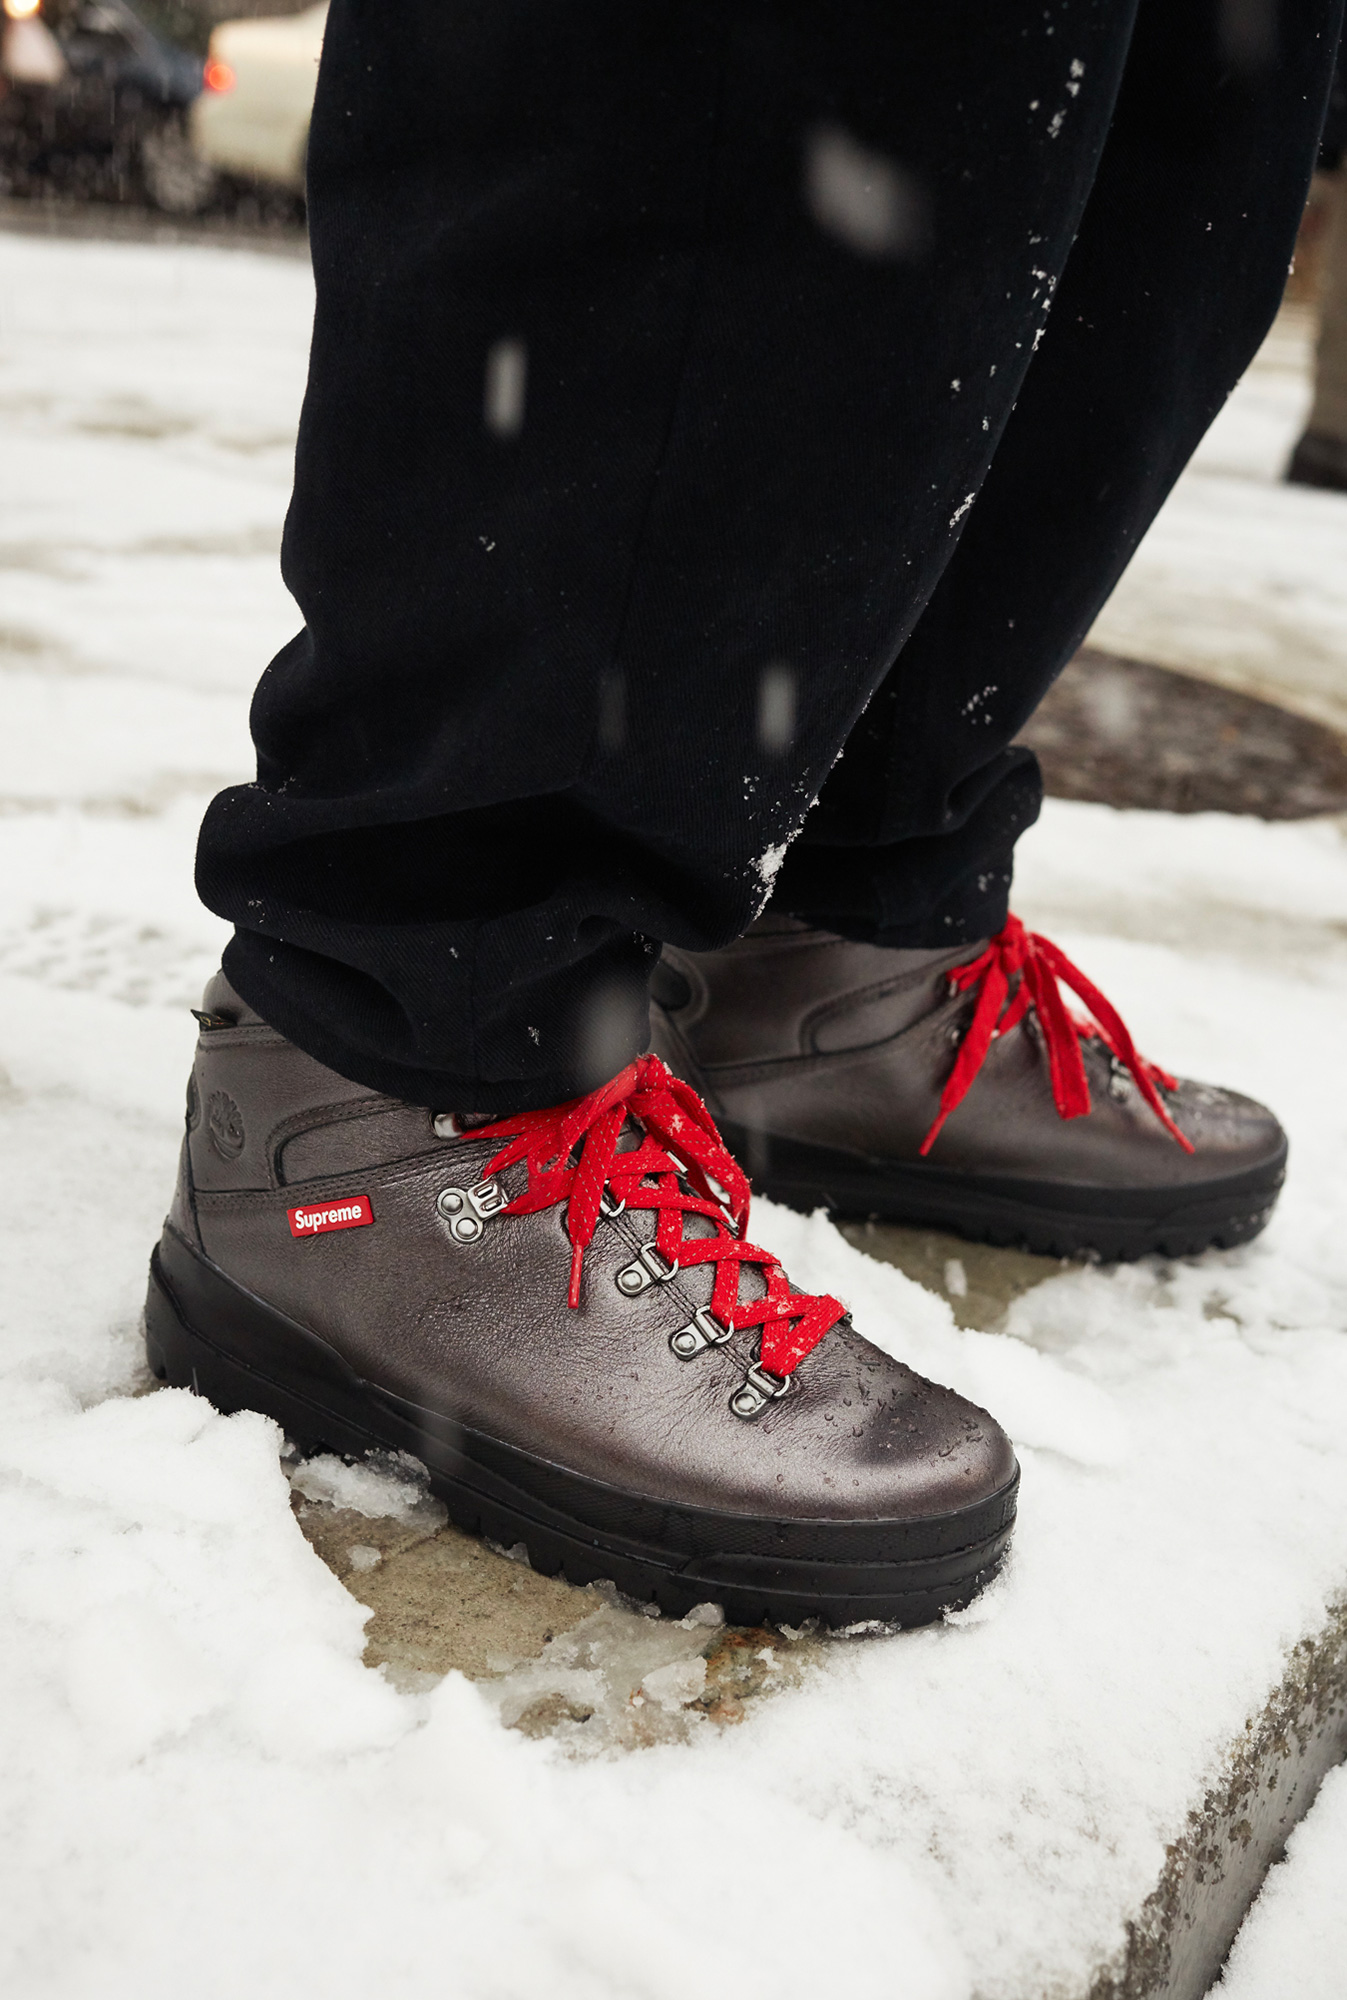 supreme-timberland-18aw-collaboration-world-hiker-front-country-boot-release-20181124-week14